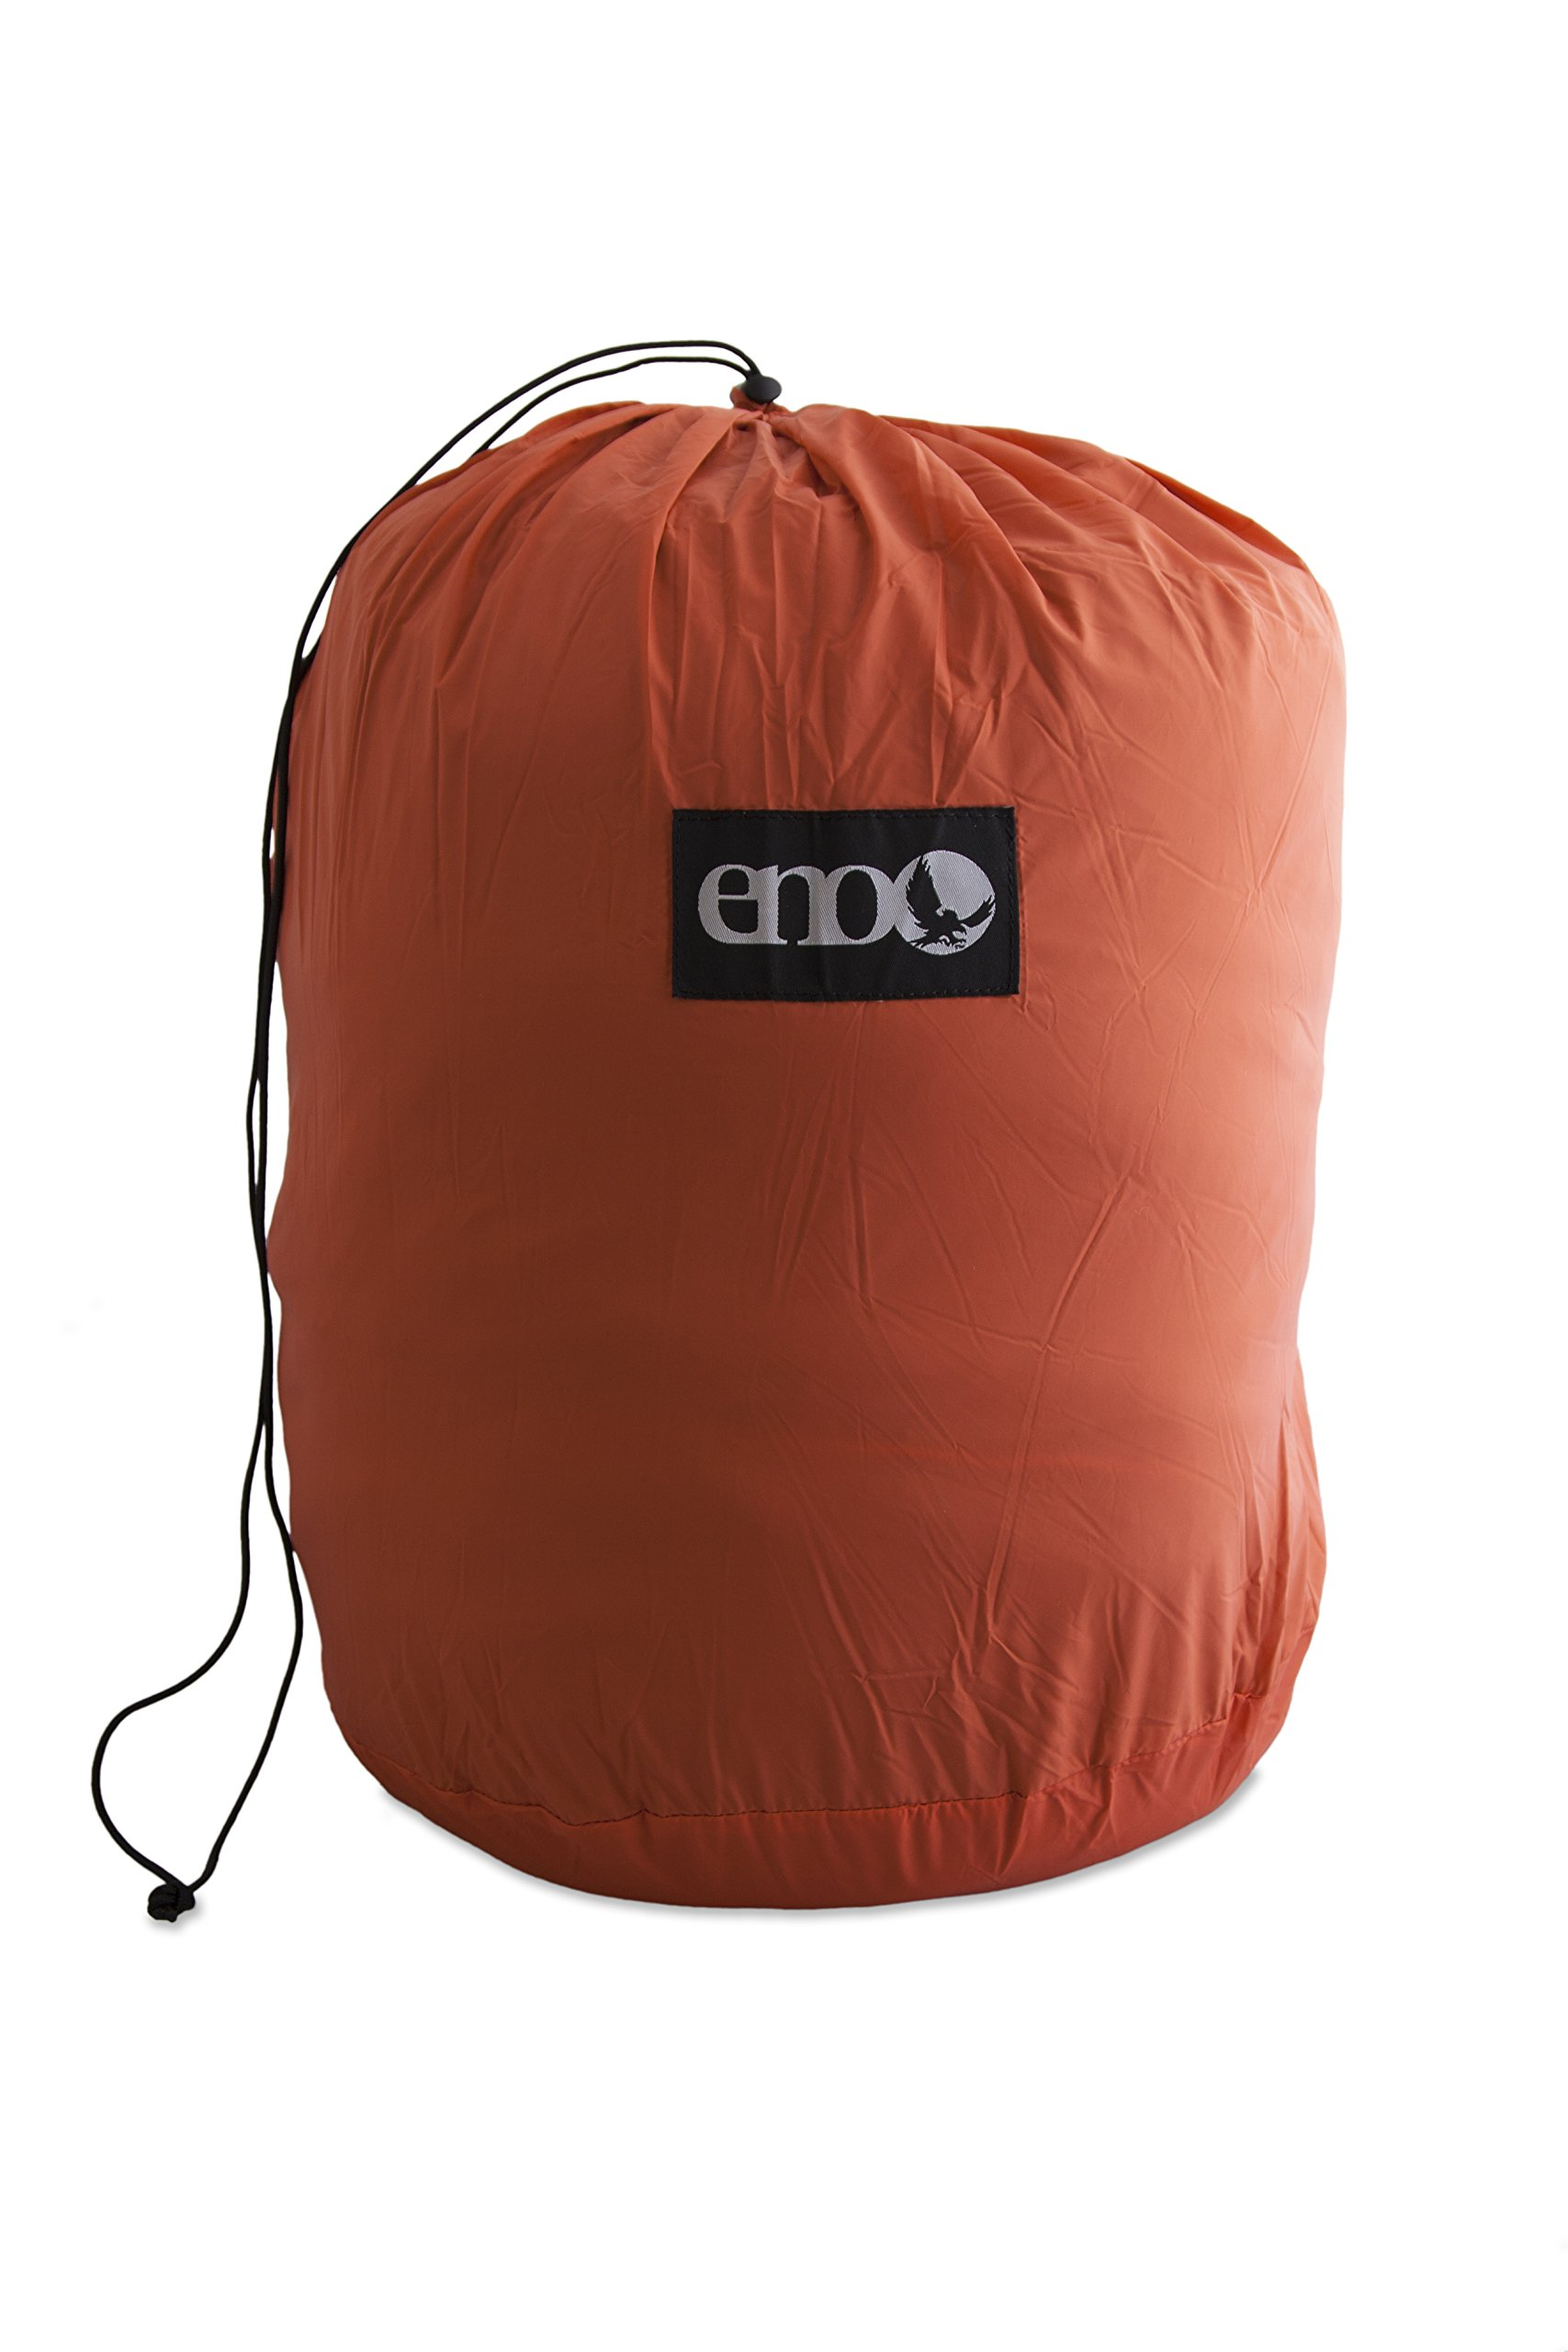 ENO Eagles Nest Outfitters - Vulcan Underquilt, Ultralight Camping Quilt, Orange/Charcoal by Eagles Nest Outfitters (Image #2)